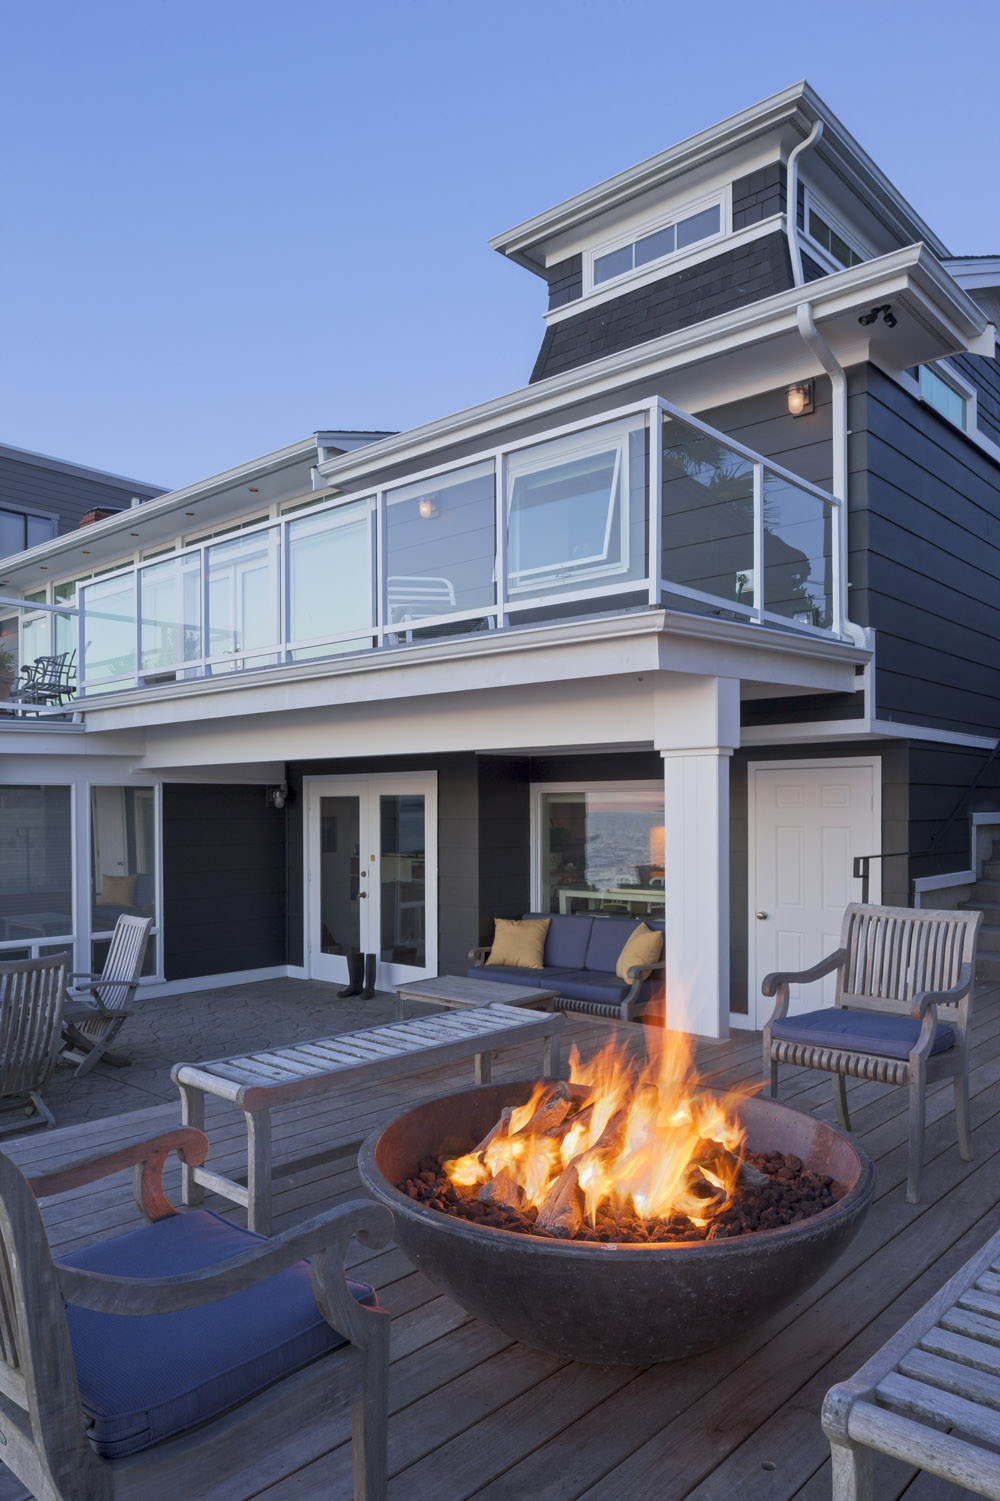 Rear facade from fire pit deck